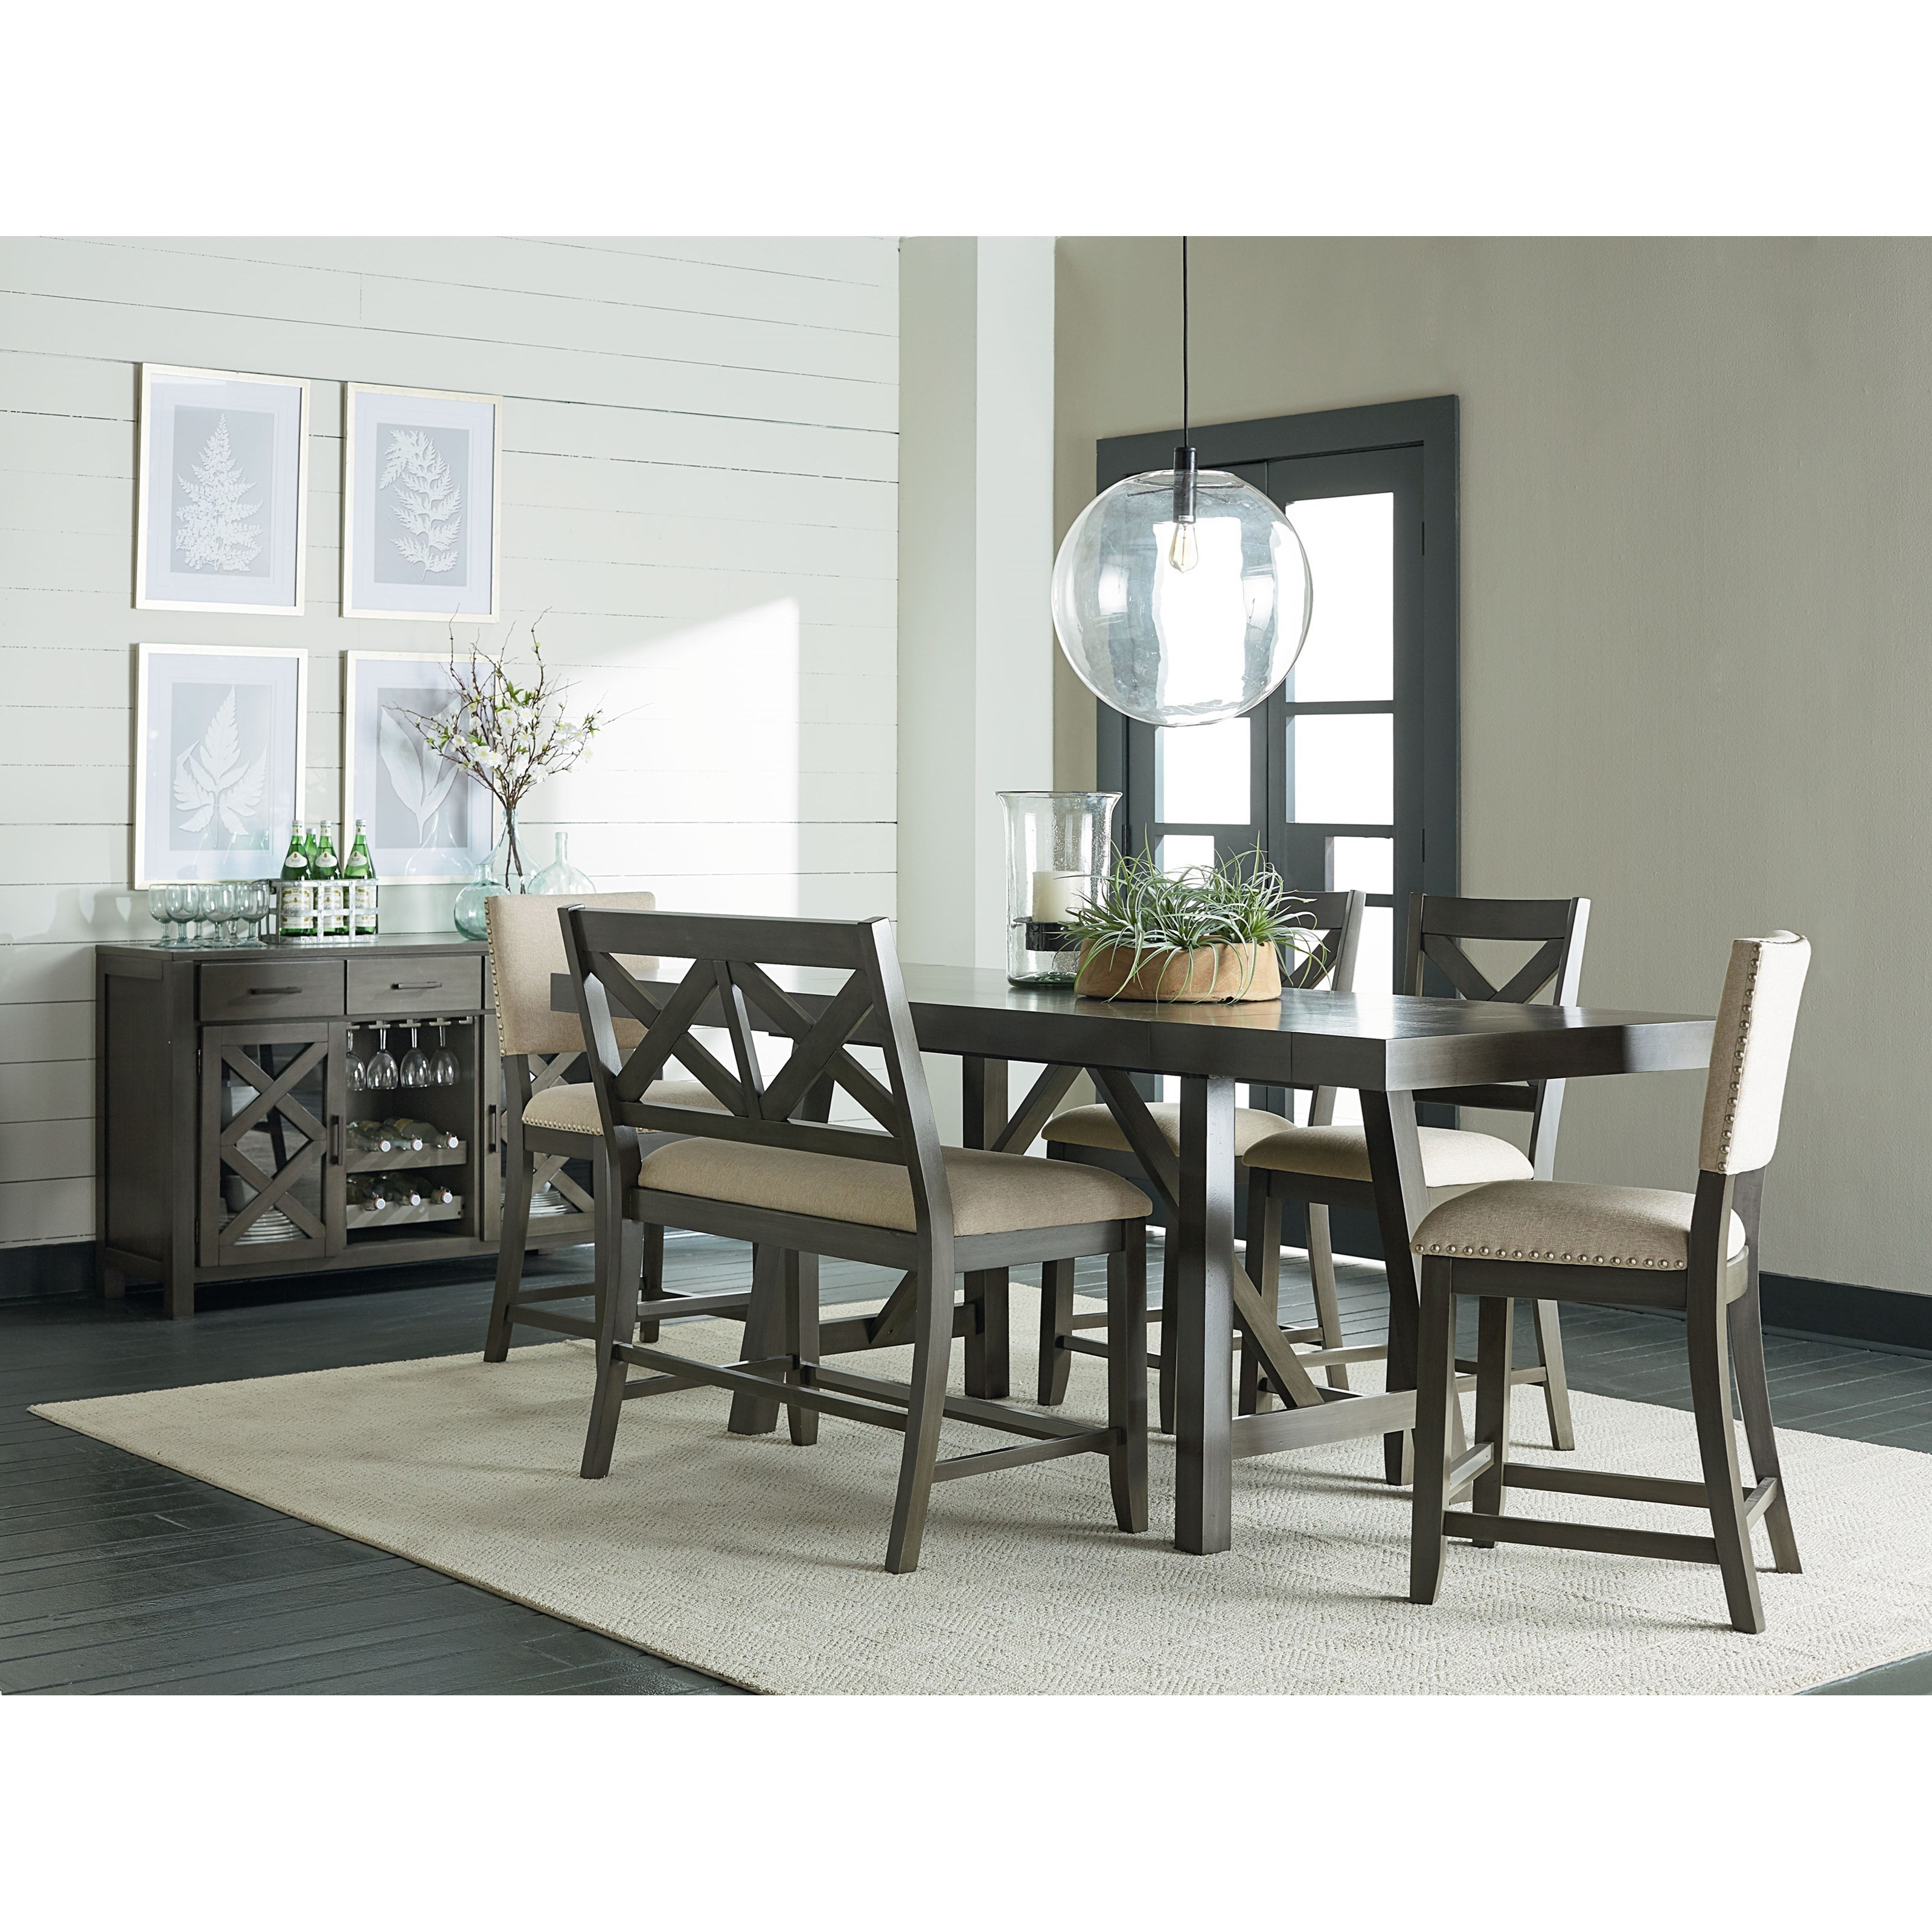 Standard Furniture Cambria Rectangular White Wood And: Standard Furniture Omaha Grey 6 Piece, Counter Height